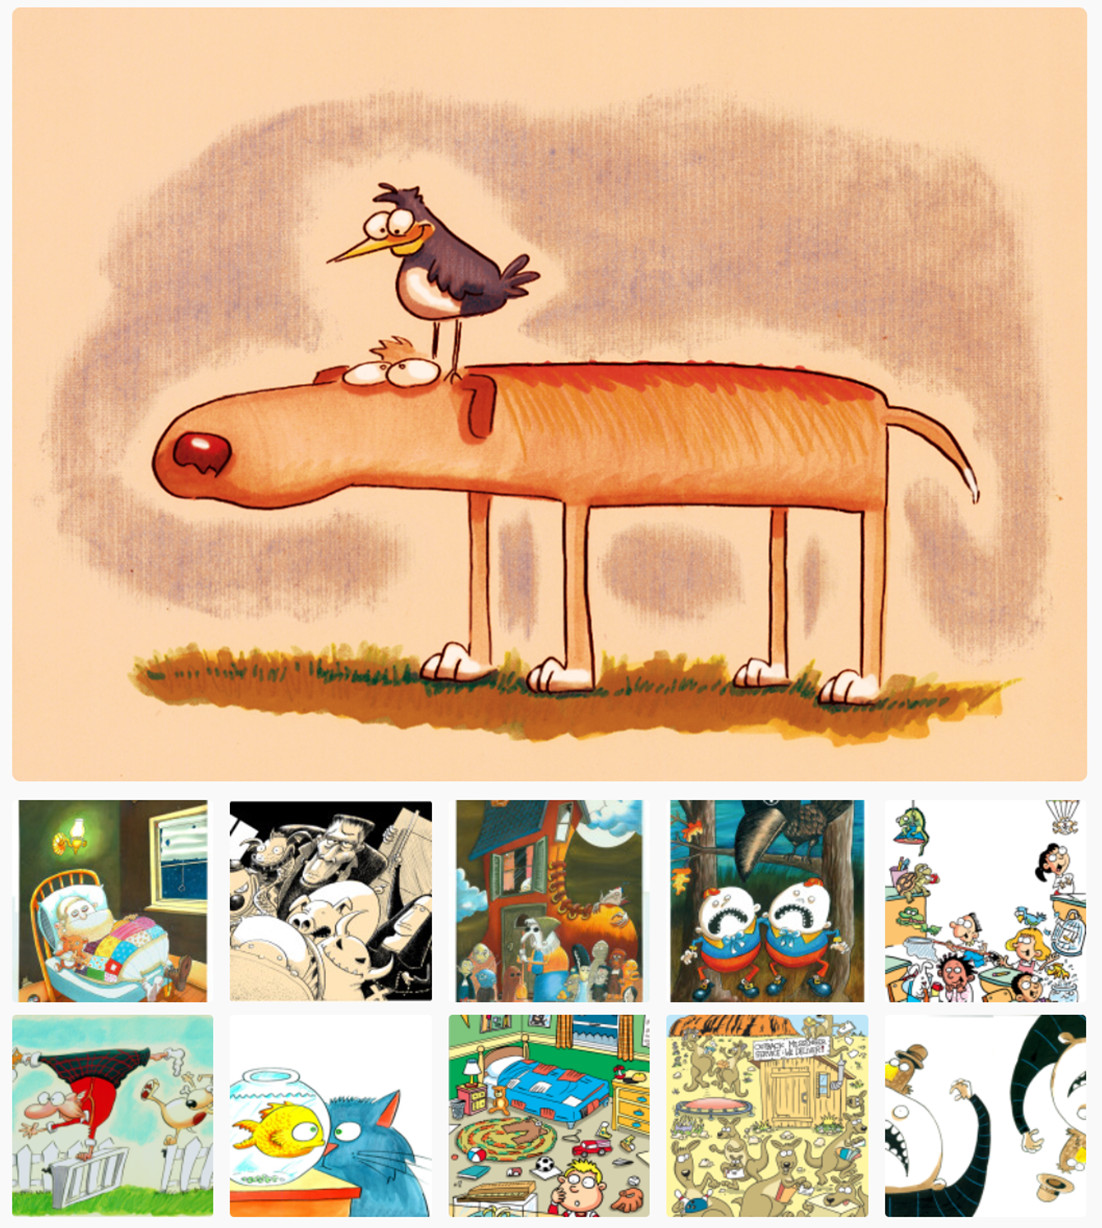 Award-winning cartoonist to share work, lesson in Dudley